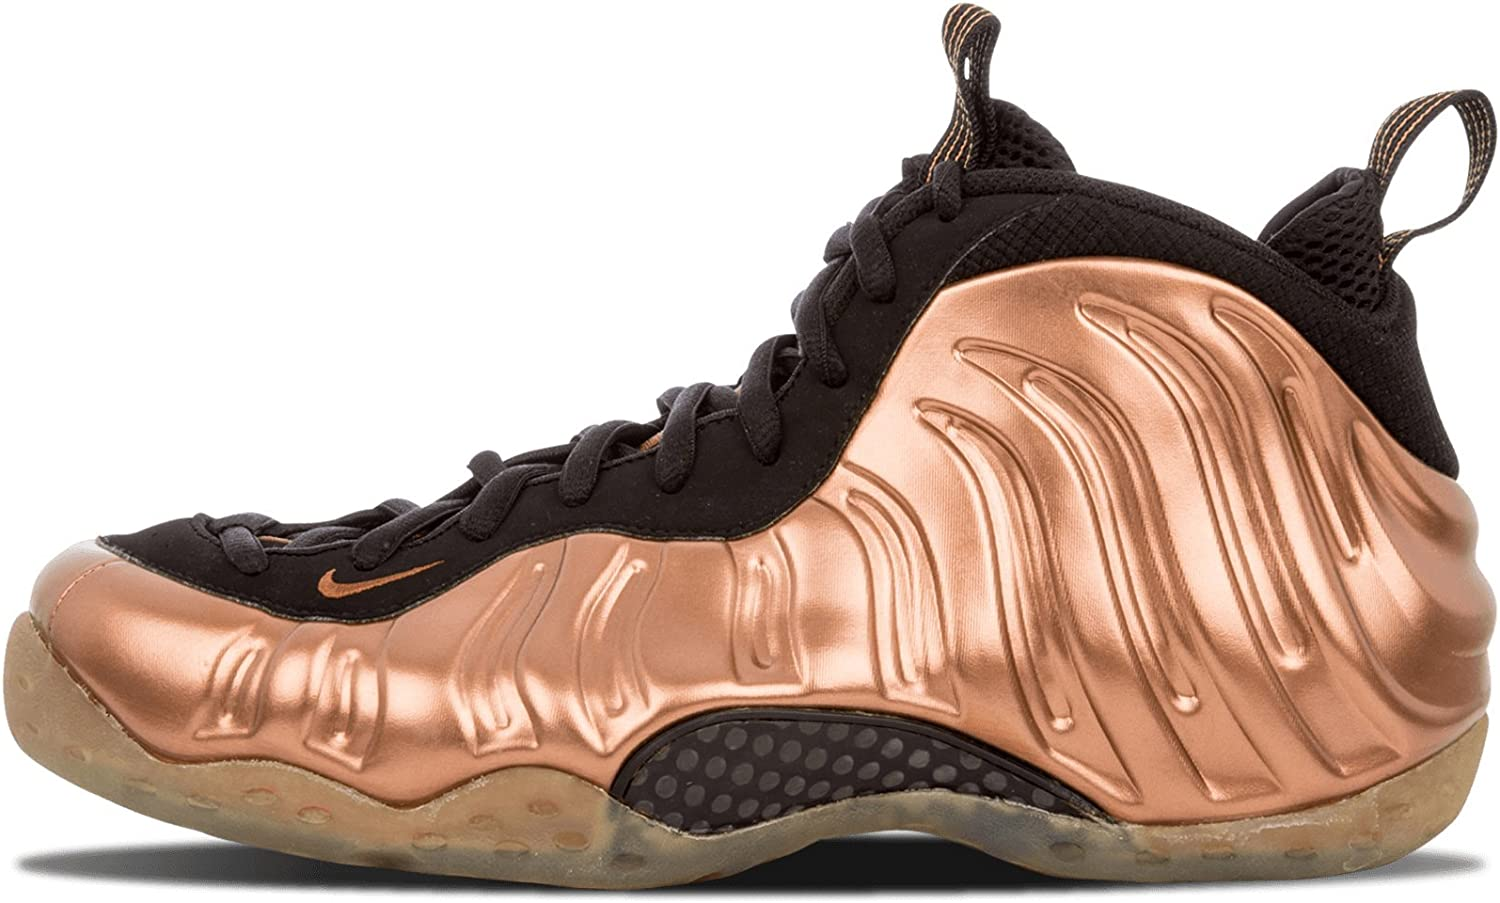 W Air Foamposite One Black BlackMetallic Gold 12W